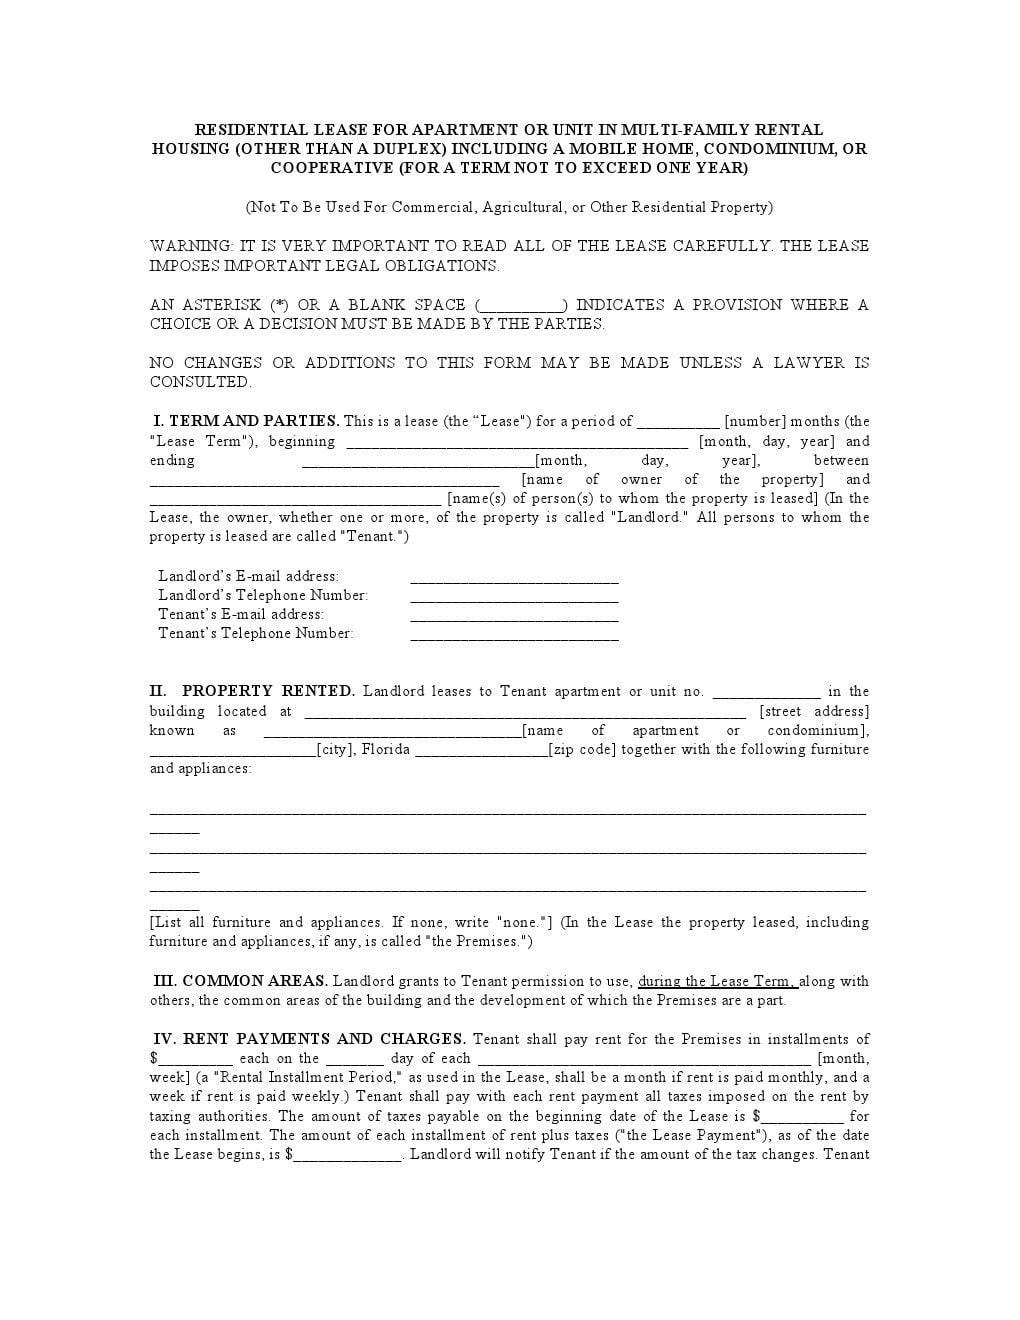 Download Free Florida Residential Lease Agreement Printable Lease